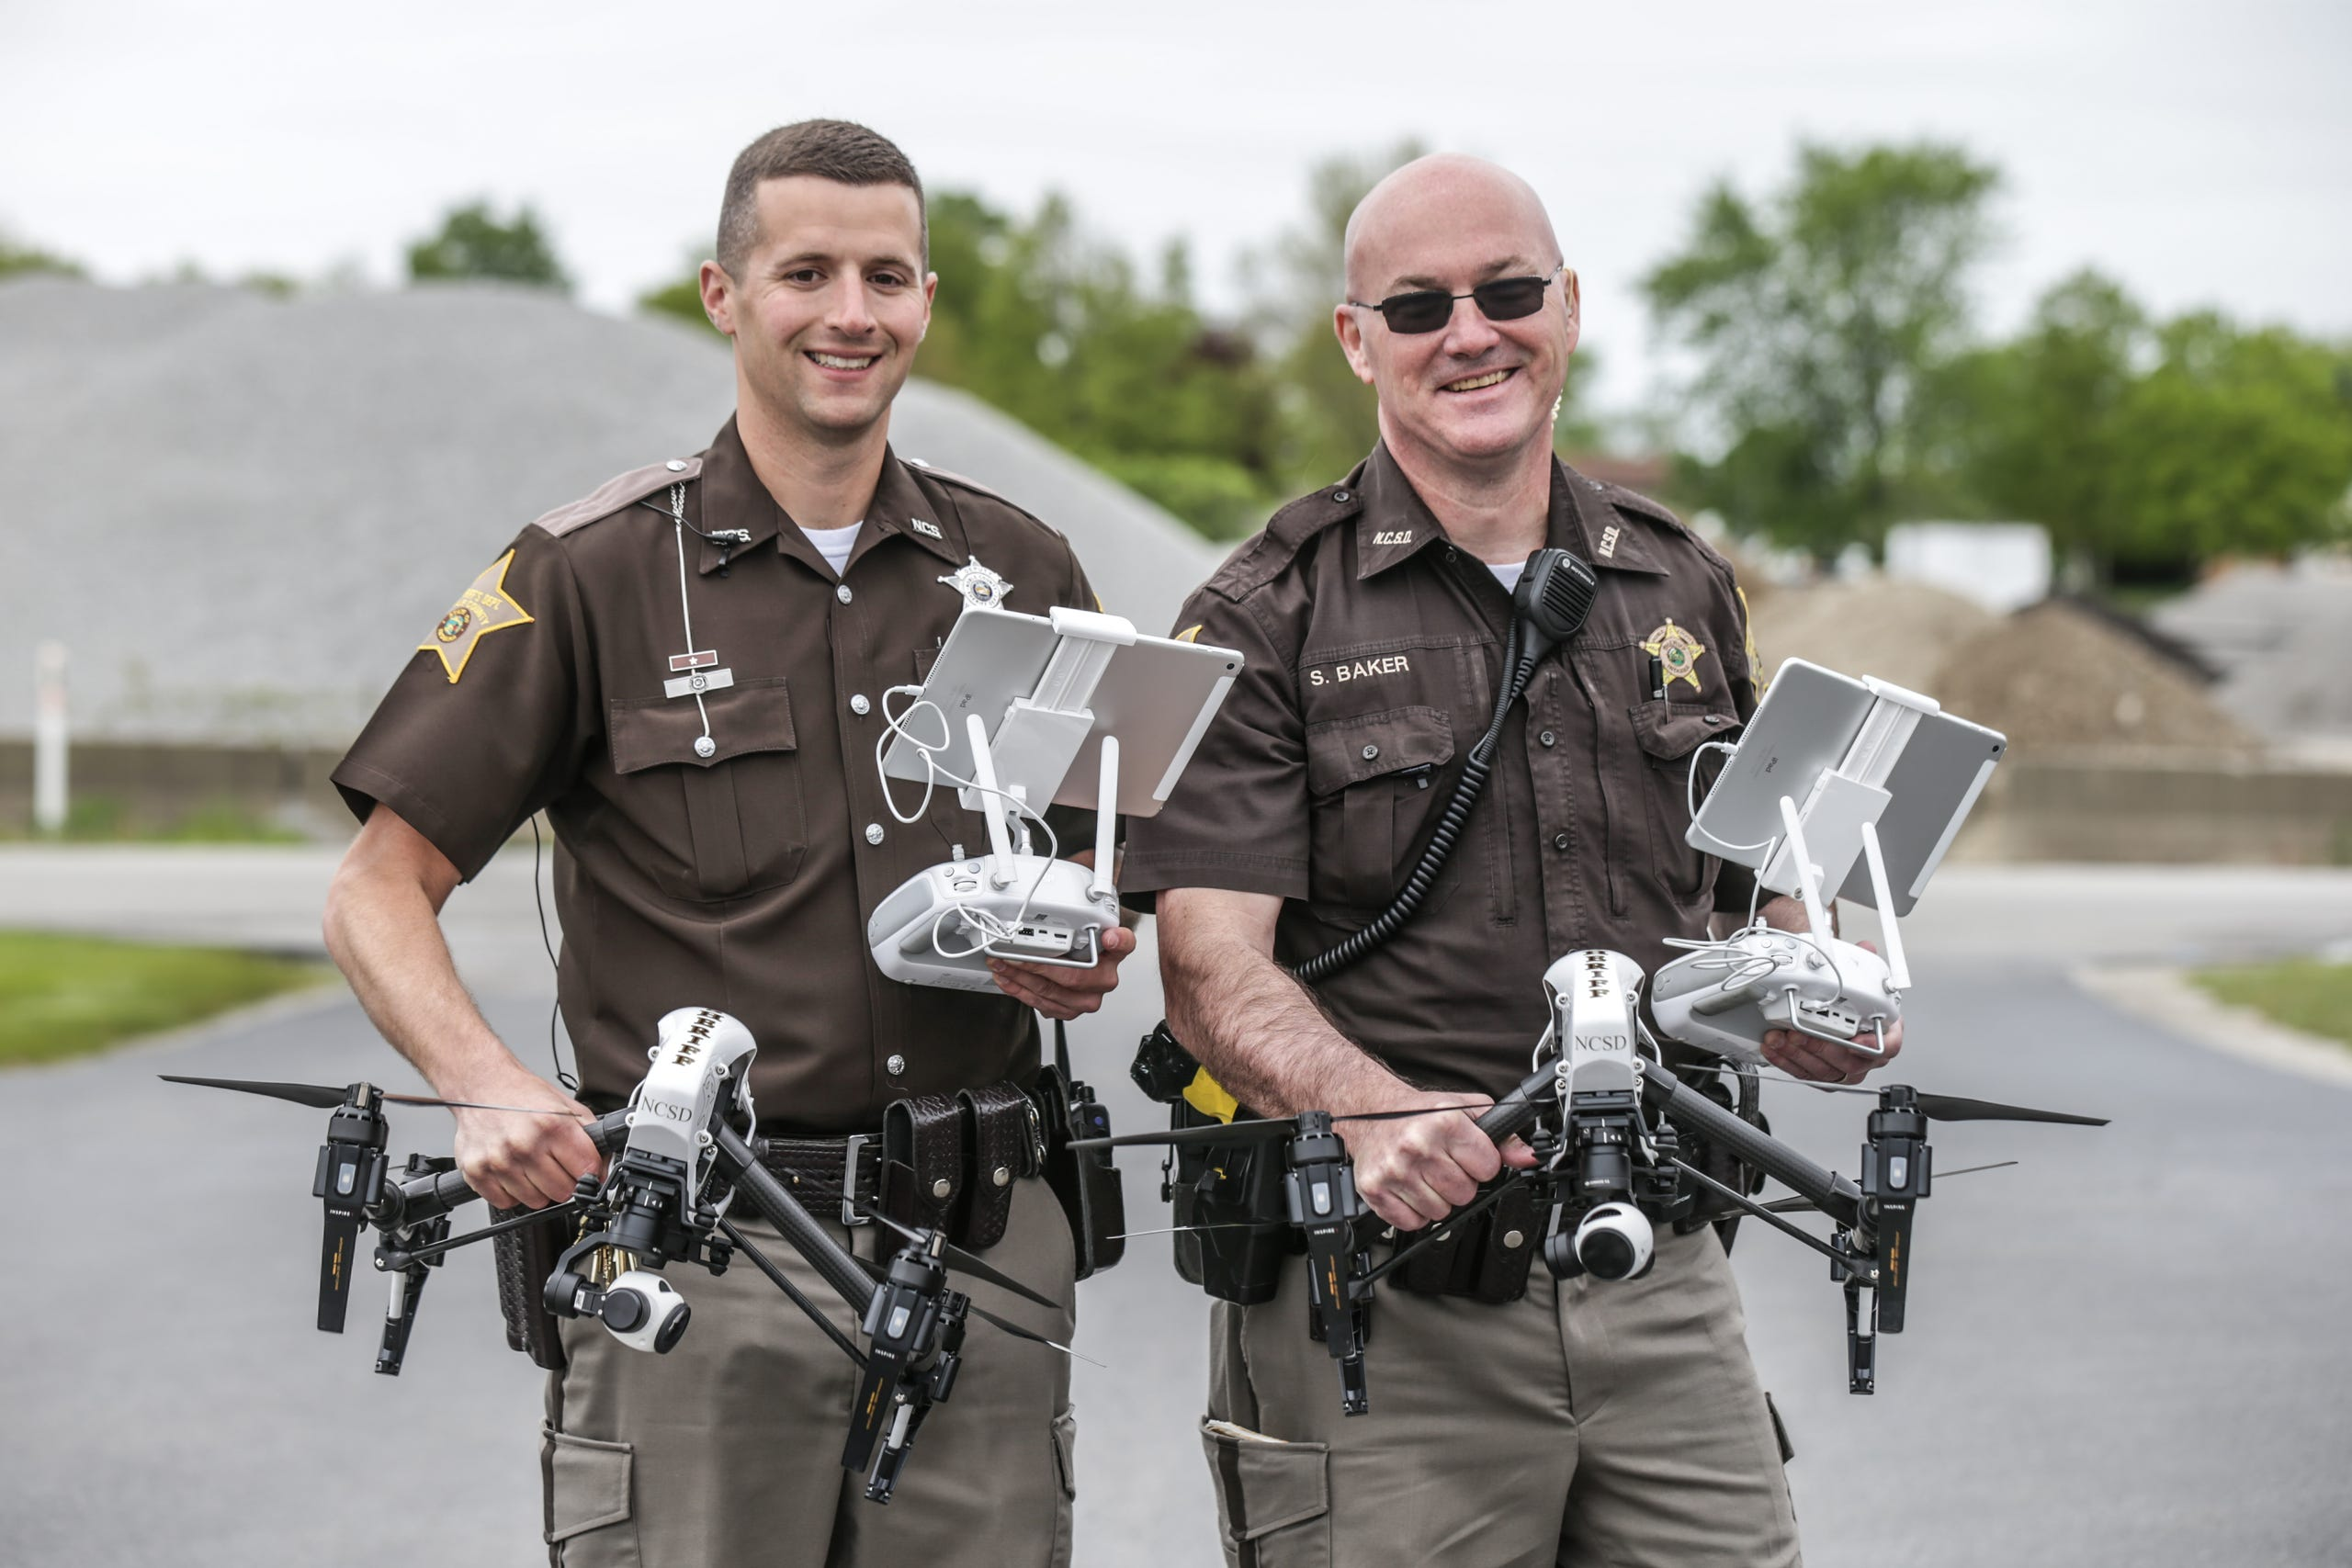 Noble County Sheriff's Dept  fight crime via drone